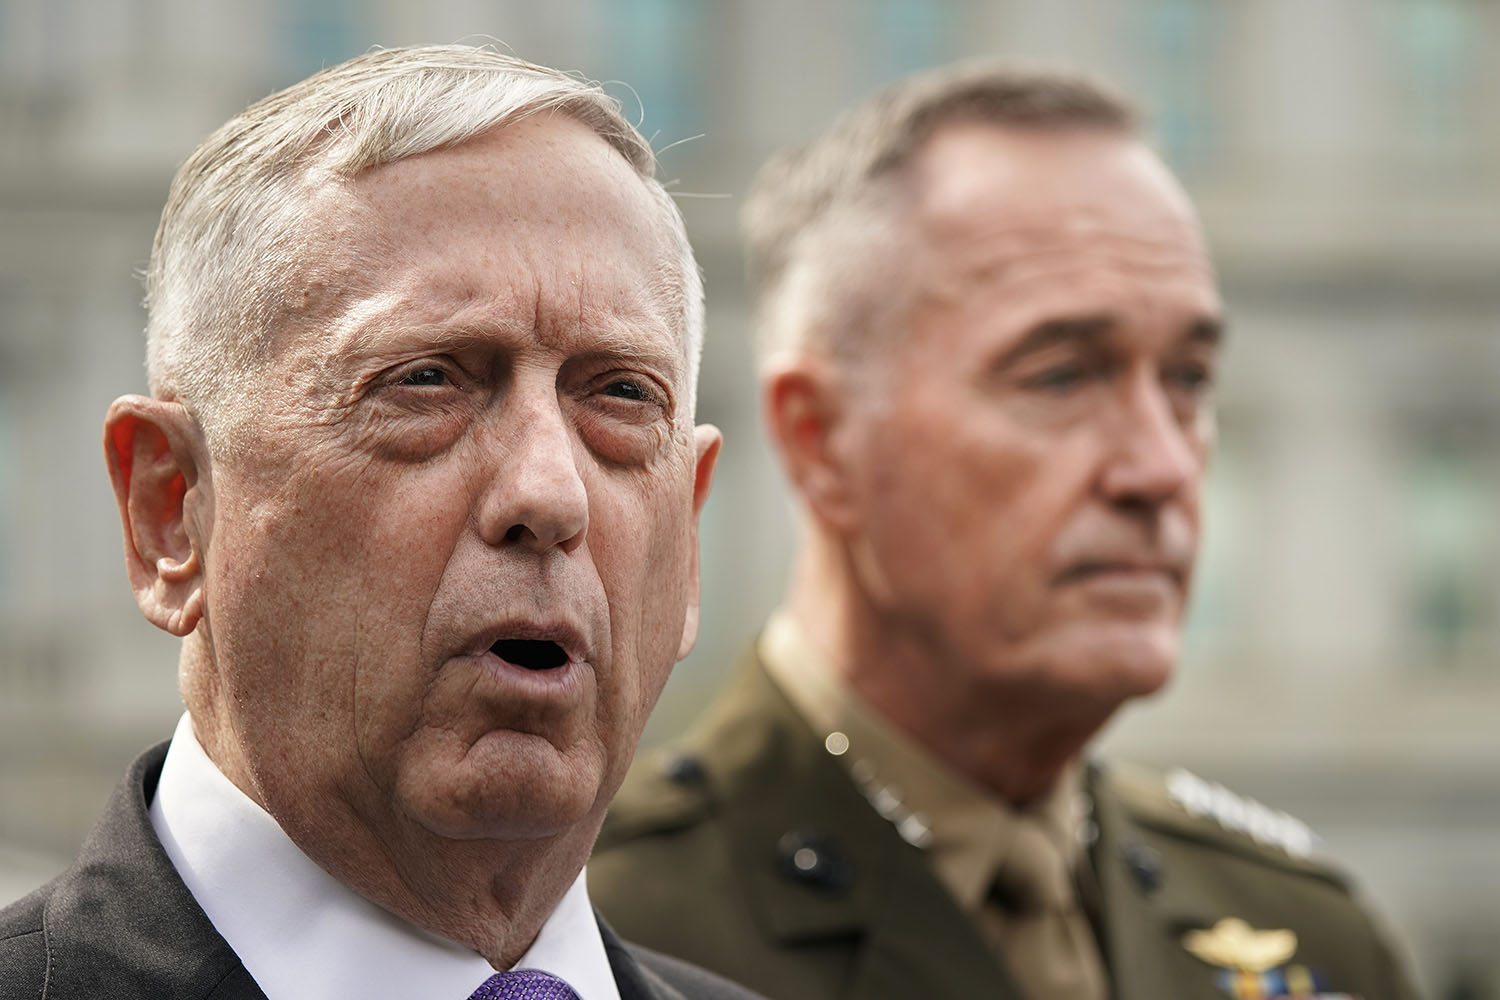 Defense Secretary Jim Mattis, left, accompanied by Joint Chiefs Chairman Gen. Joseph Dunford, right, speaks to members of the media outside the West Wing of the White House in Washington, Sunday, Sept. 3 regarding the escalating crisis in North Korea's nuclear threats. (Pablo Martinez Monsivais/AP)